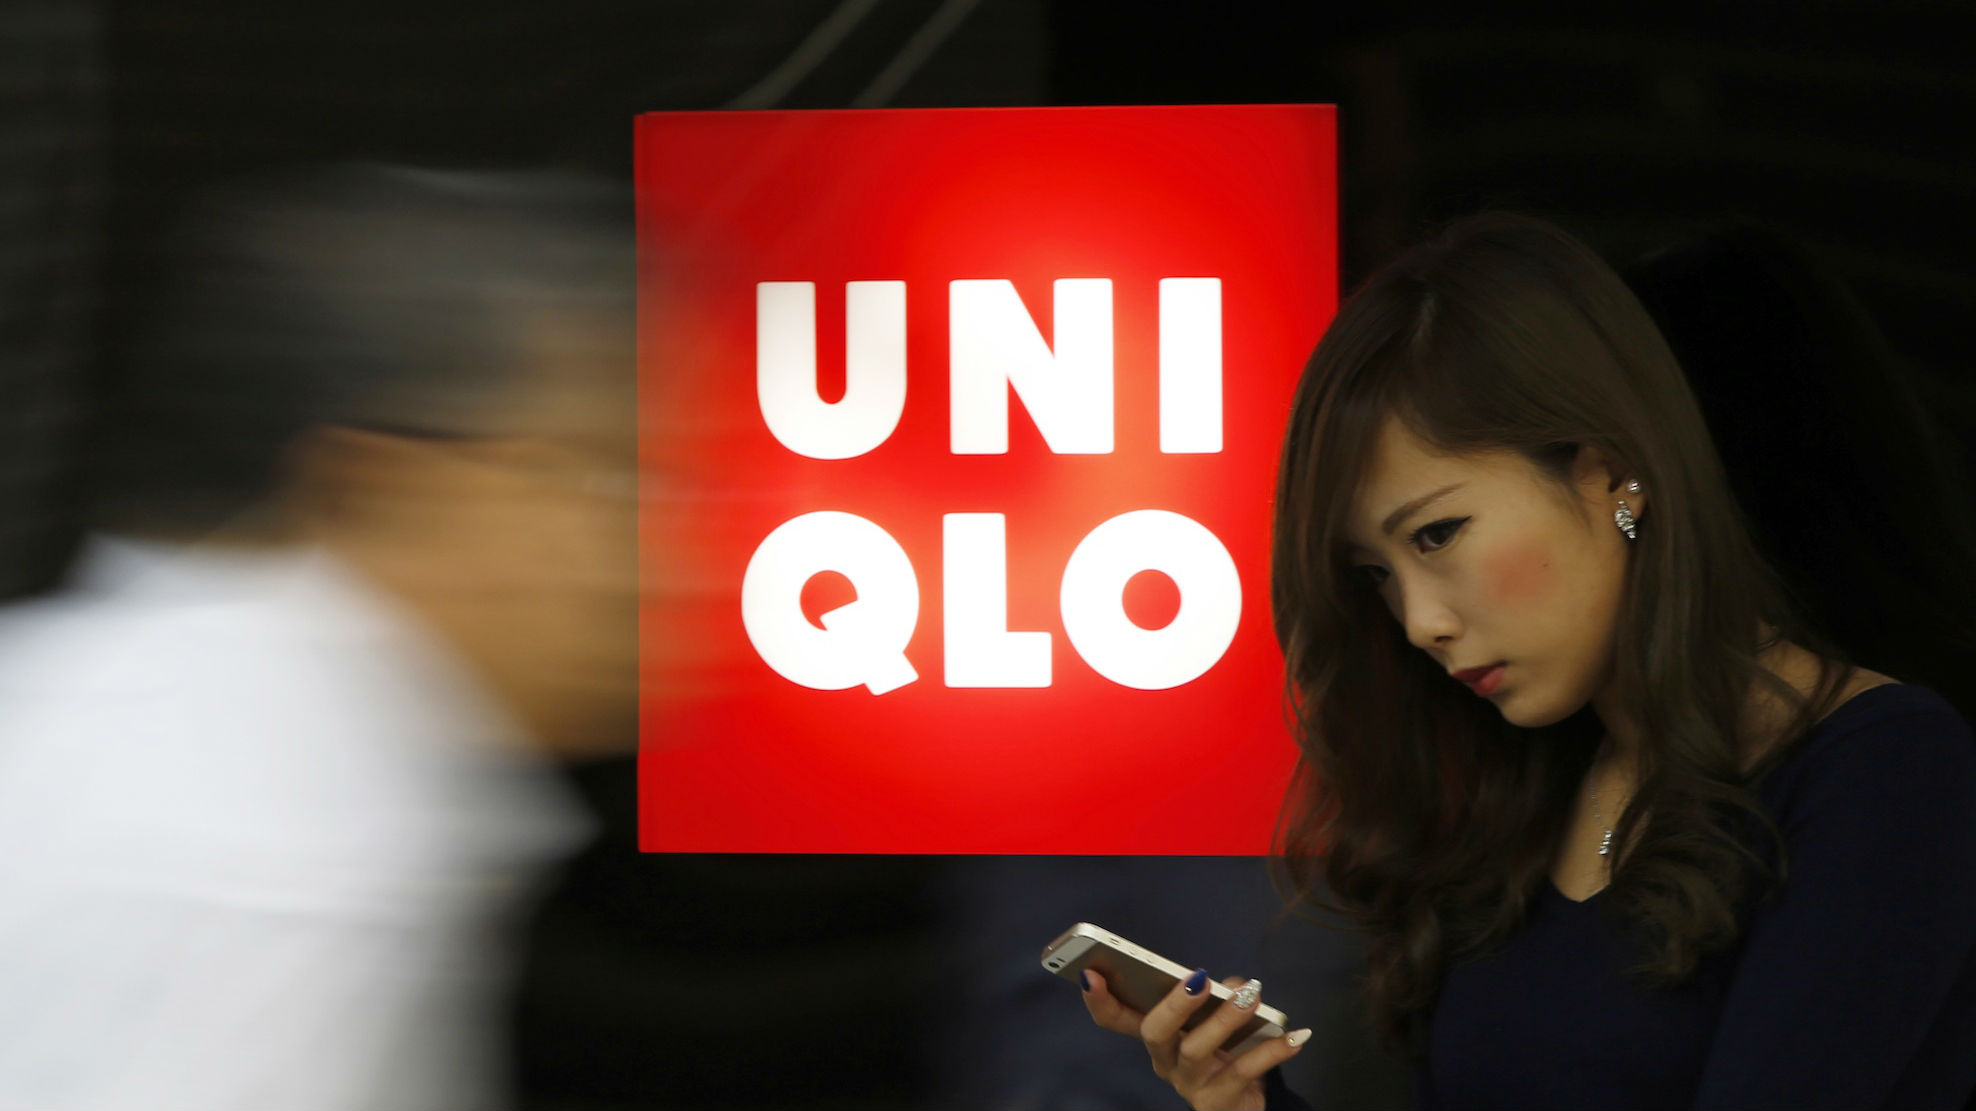 Criticized uniqlo for poor working conditions advise to wear for summer in 2019